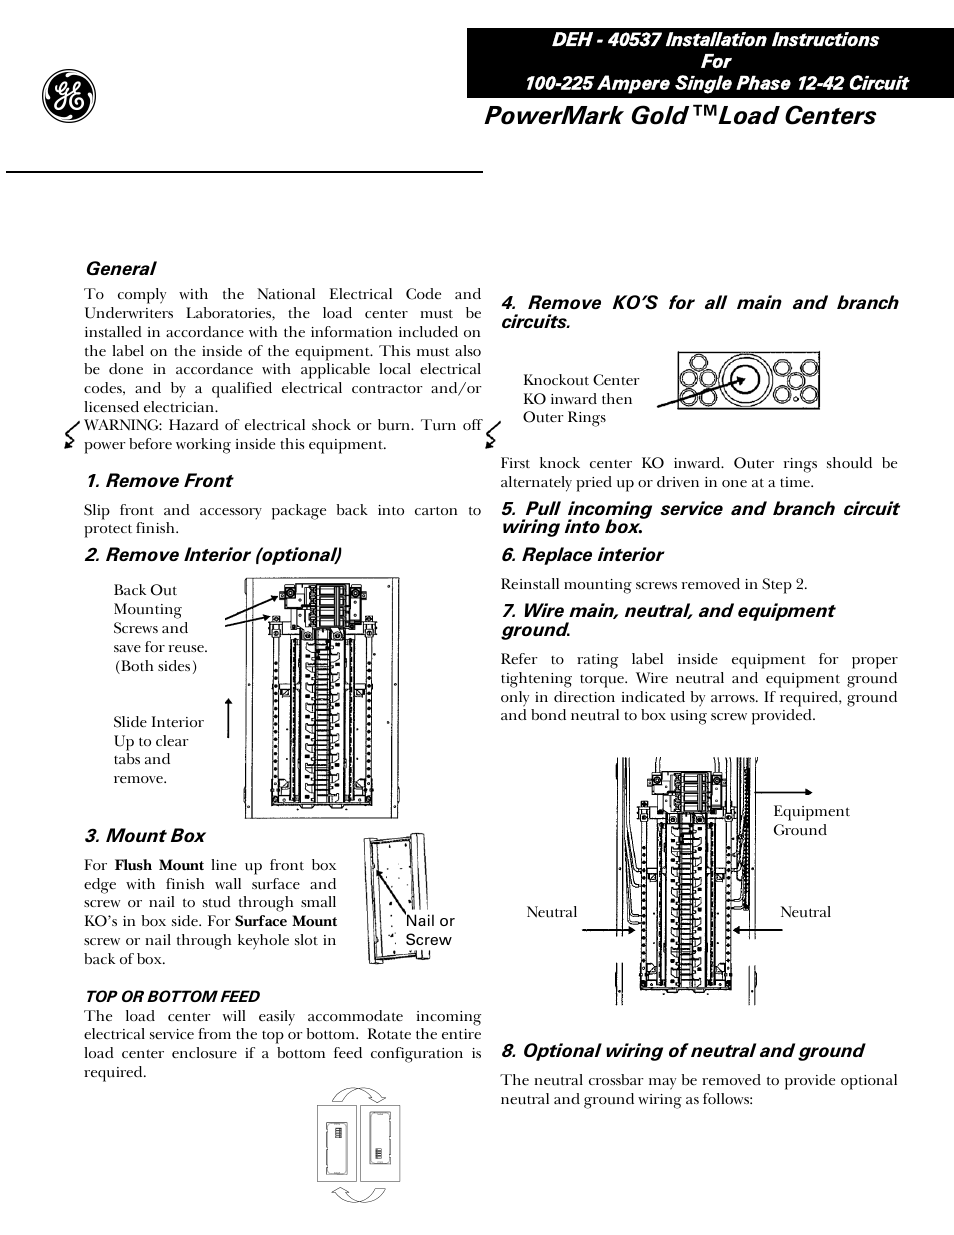 Ge Powermark Gold Load Center Wiring Diagram